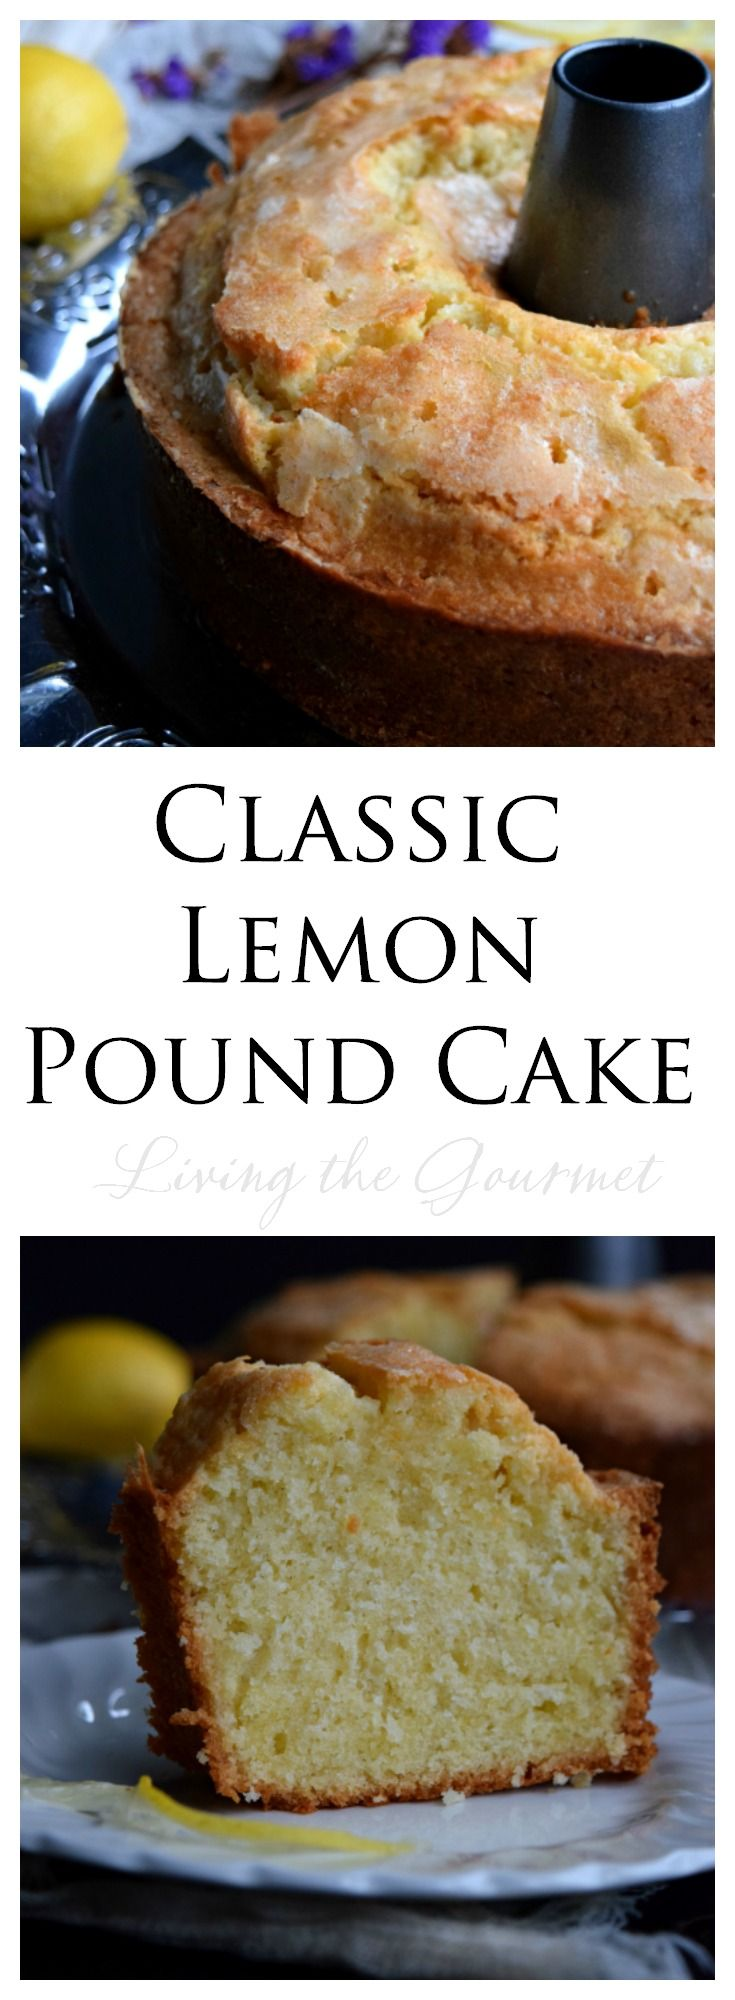 Living the Gourmet: Classic Lemon Pound Cake